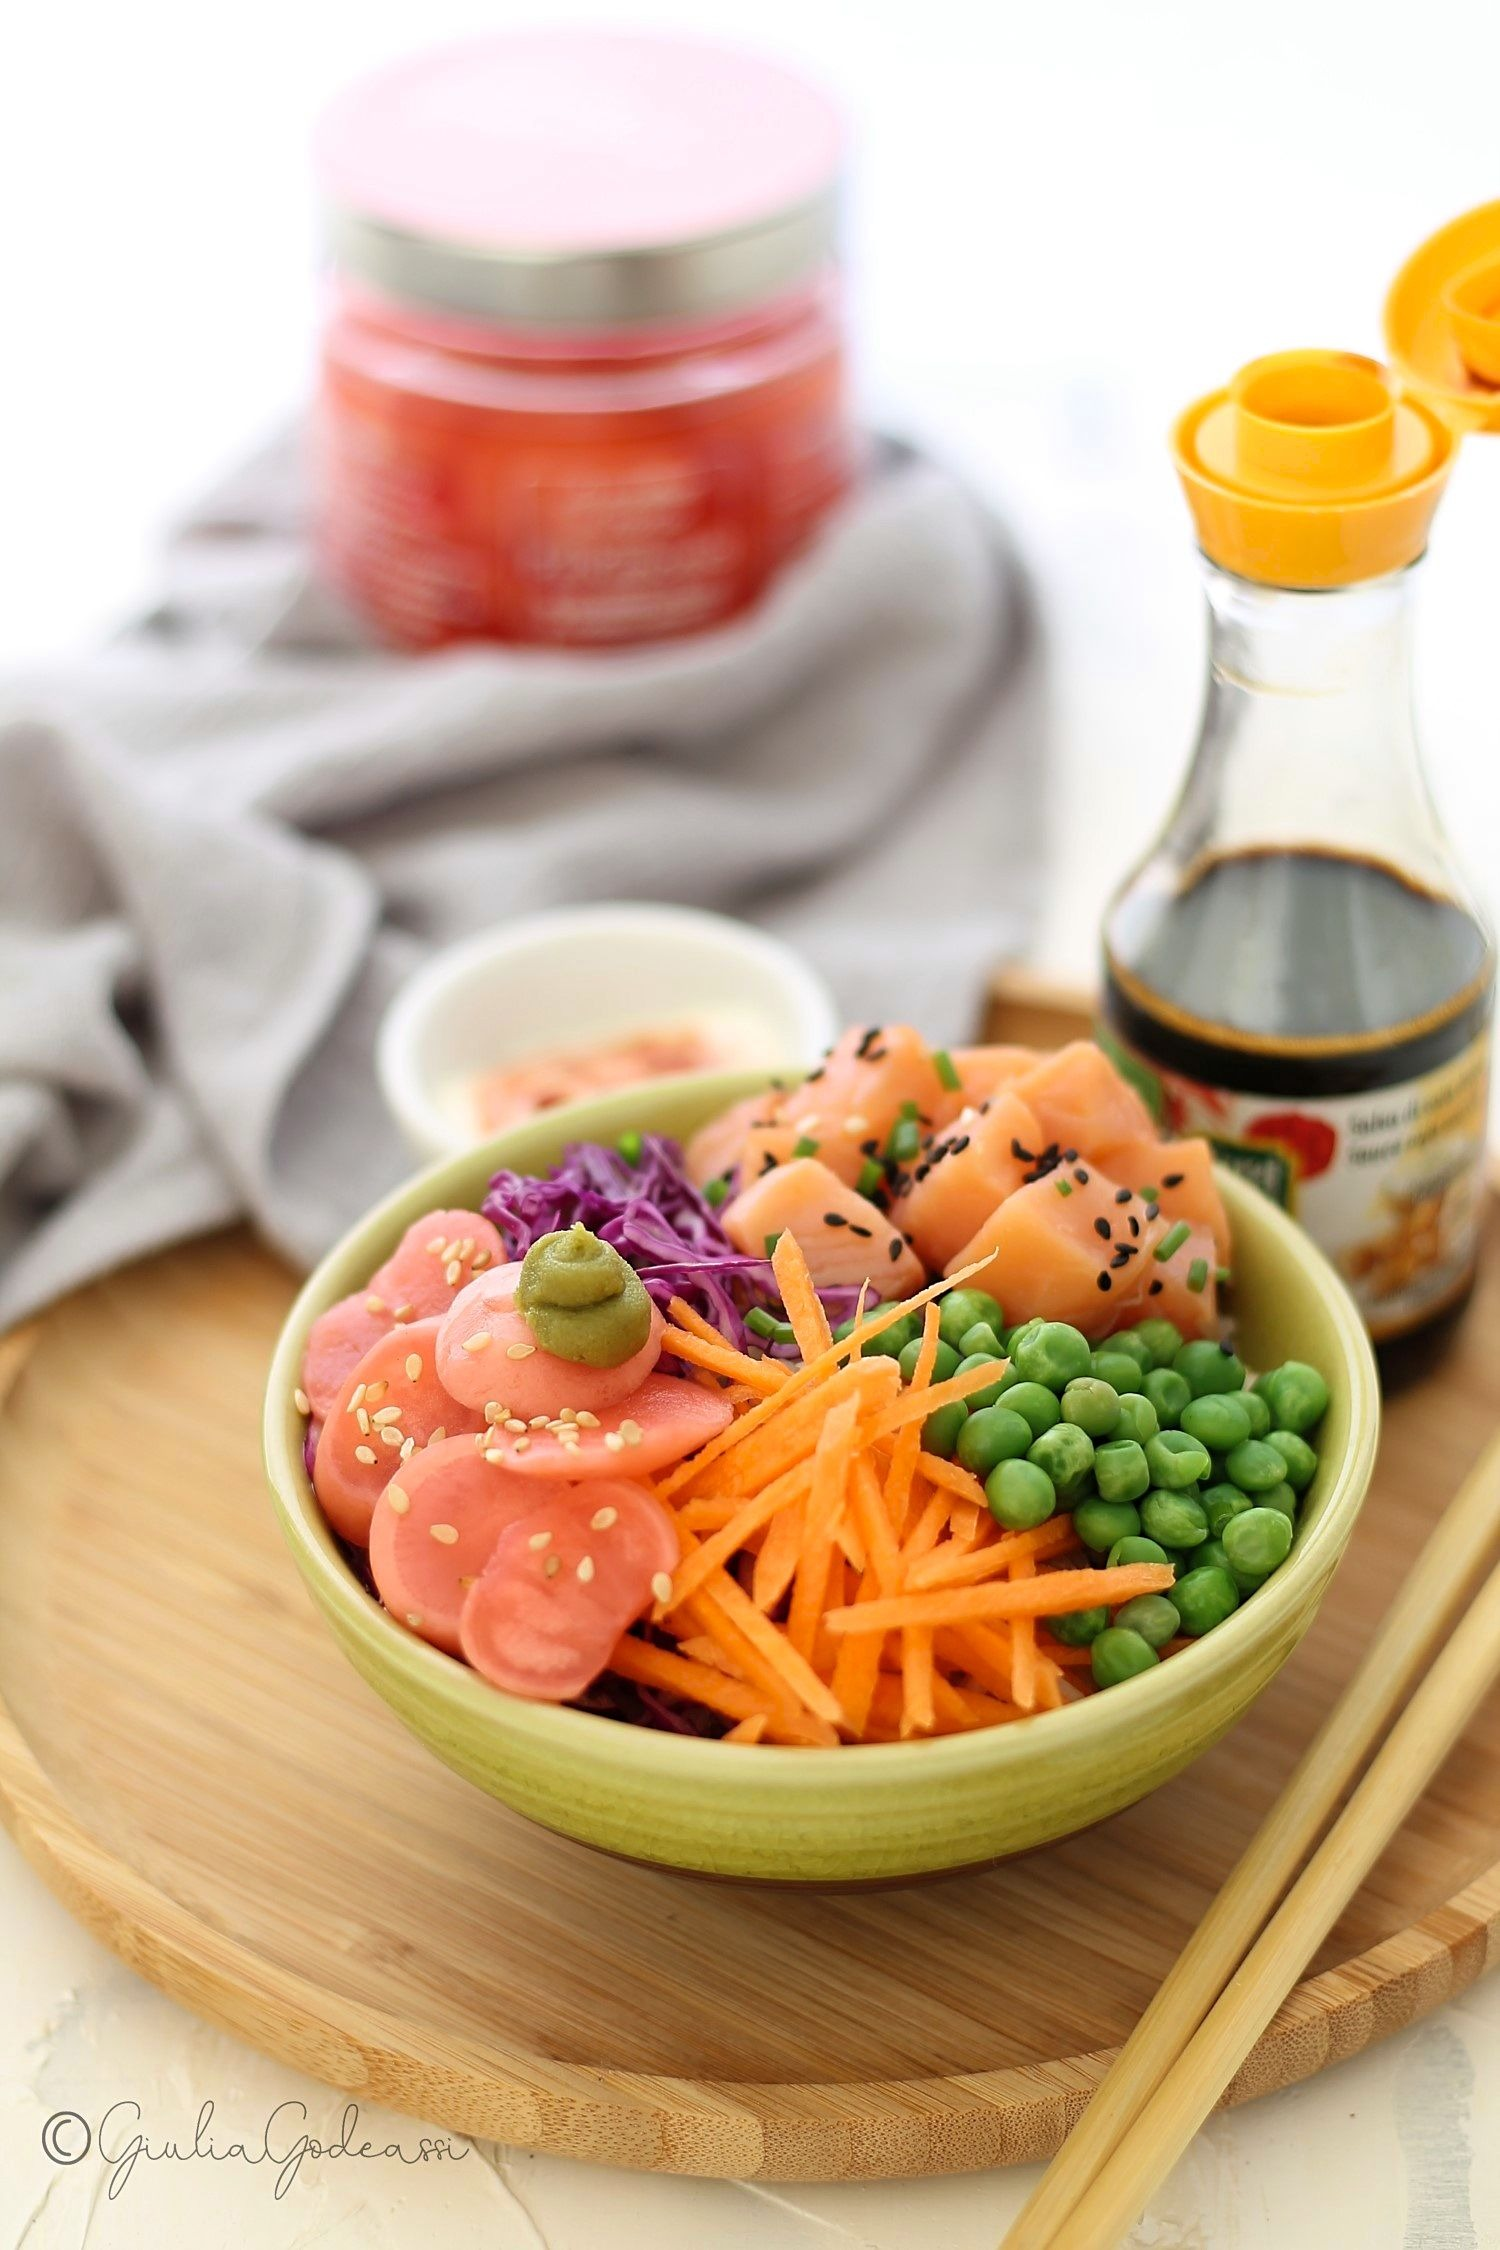 POKE' BOWL WITH SALMON AND PINKIMONIO